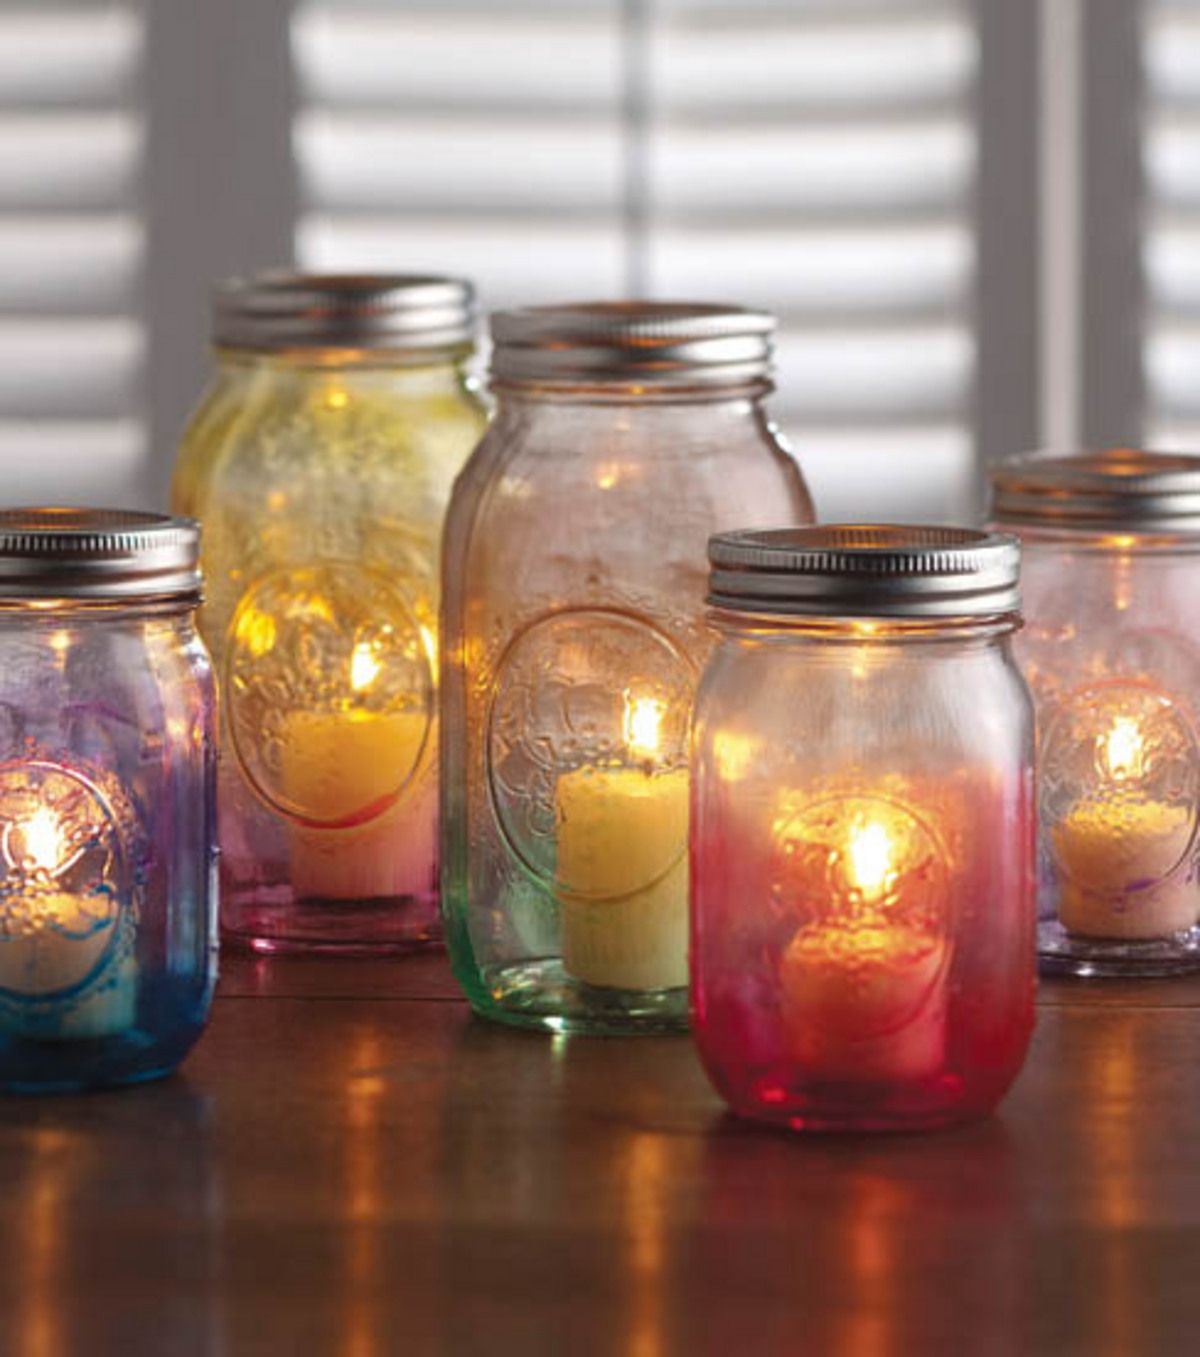 colored mod podge lanternscolored mod podge lanterns | mason jar